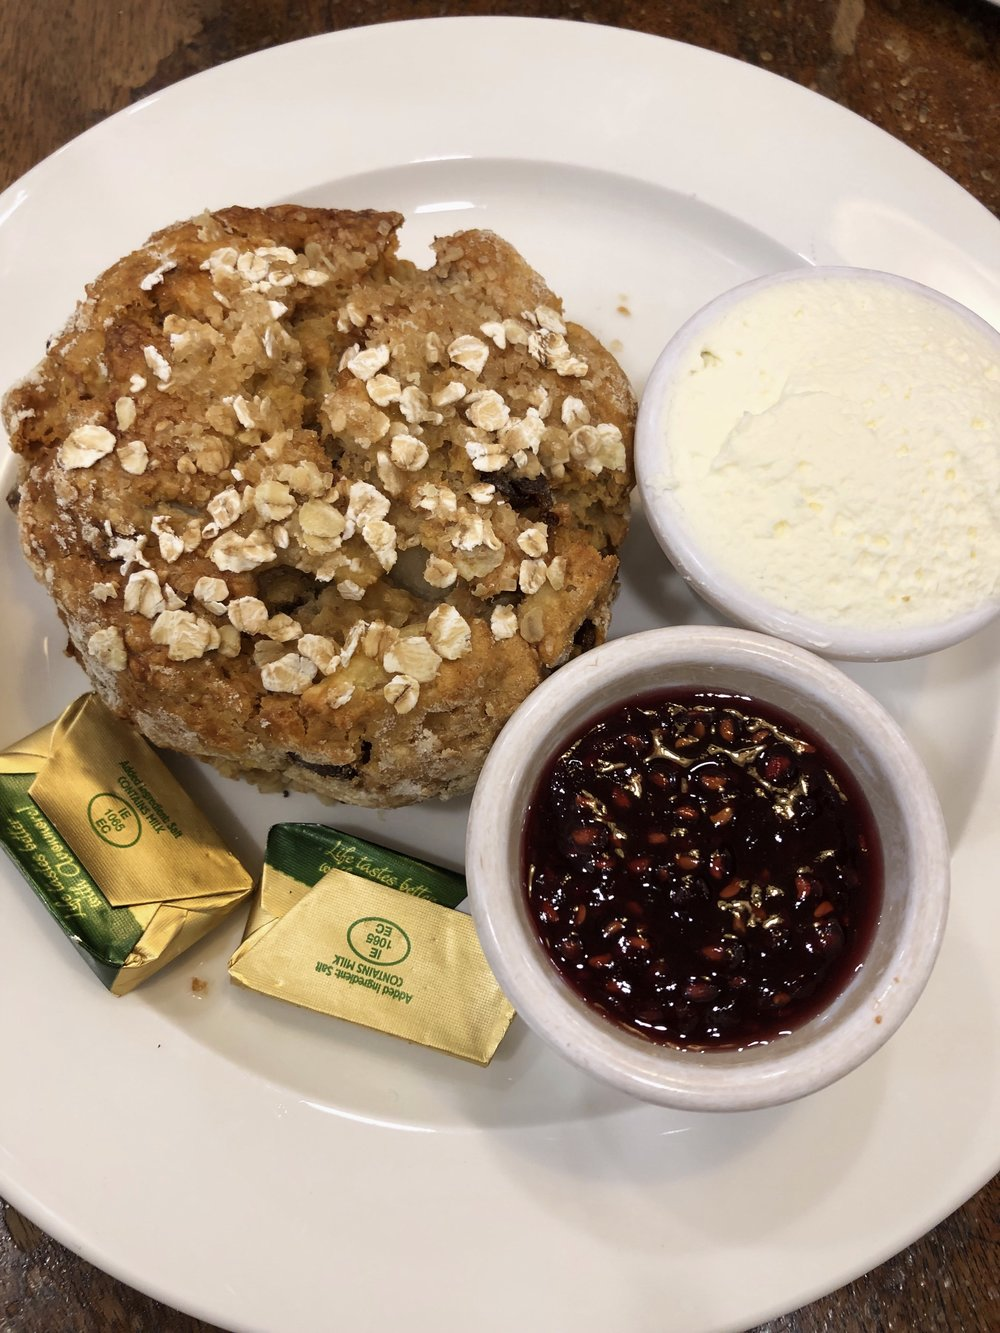 Oat, date and apple scone with jam, clotted cream and delicious Irish butter